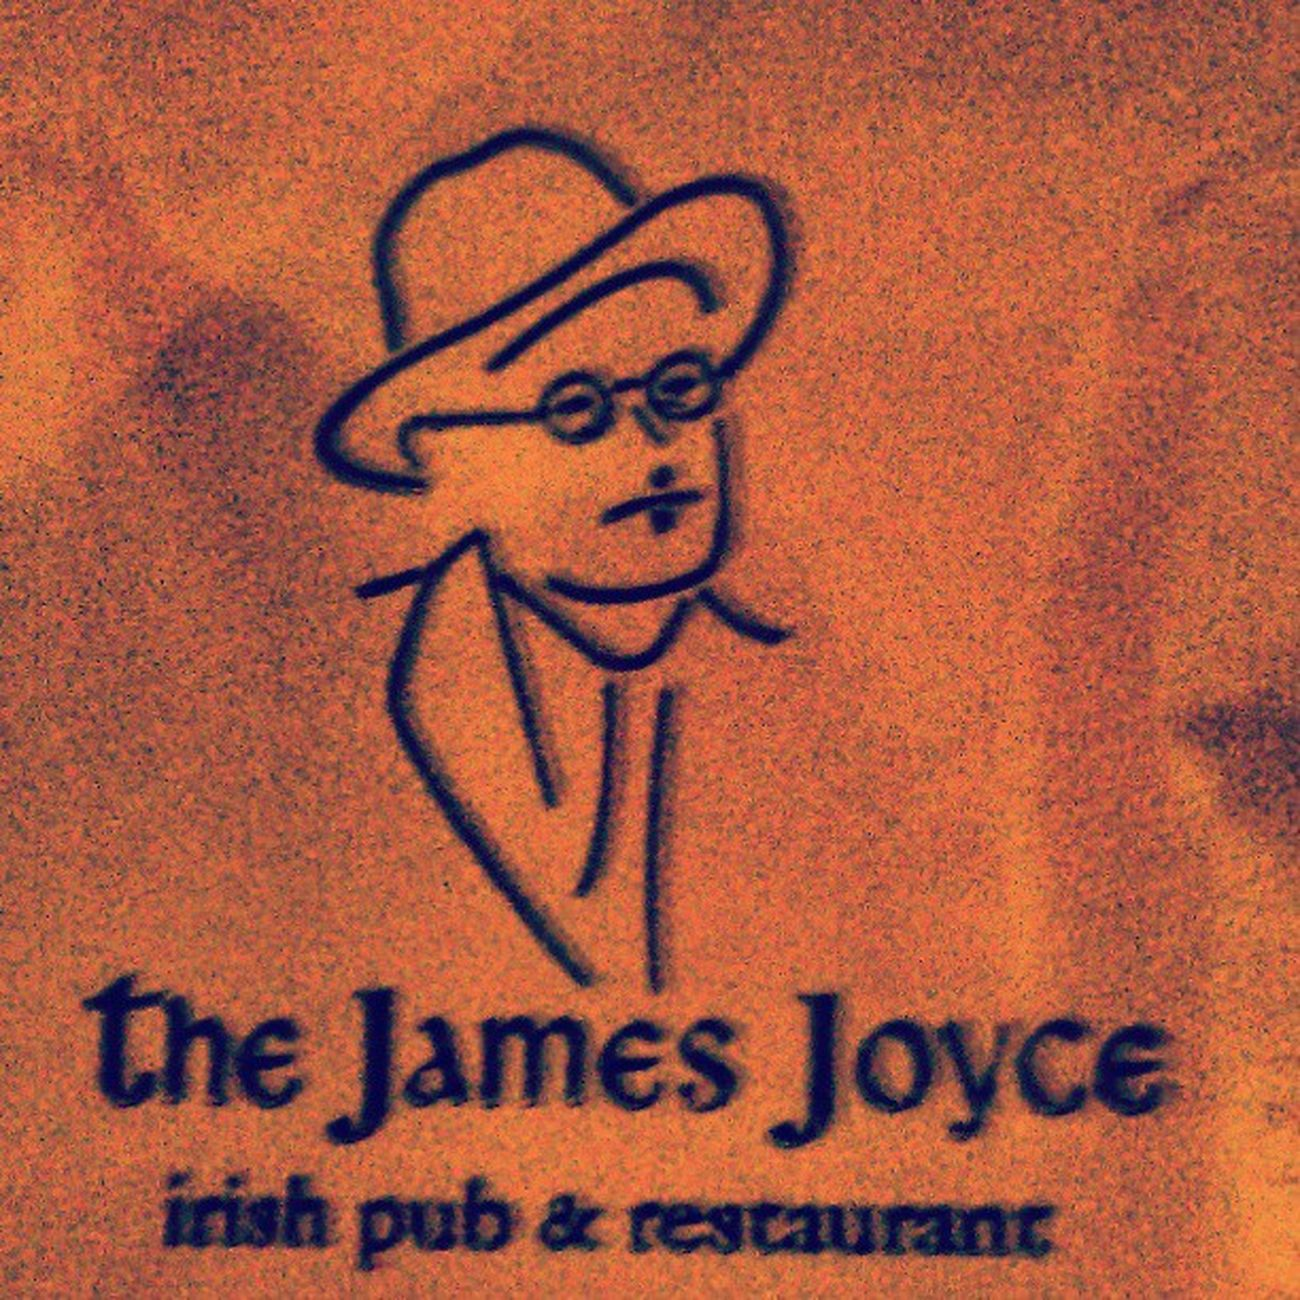 The James Joyce Irish Pub Restaurant Monastiraki Thiseio Athens Greece